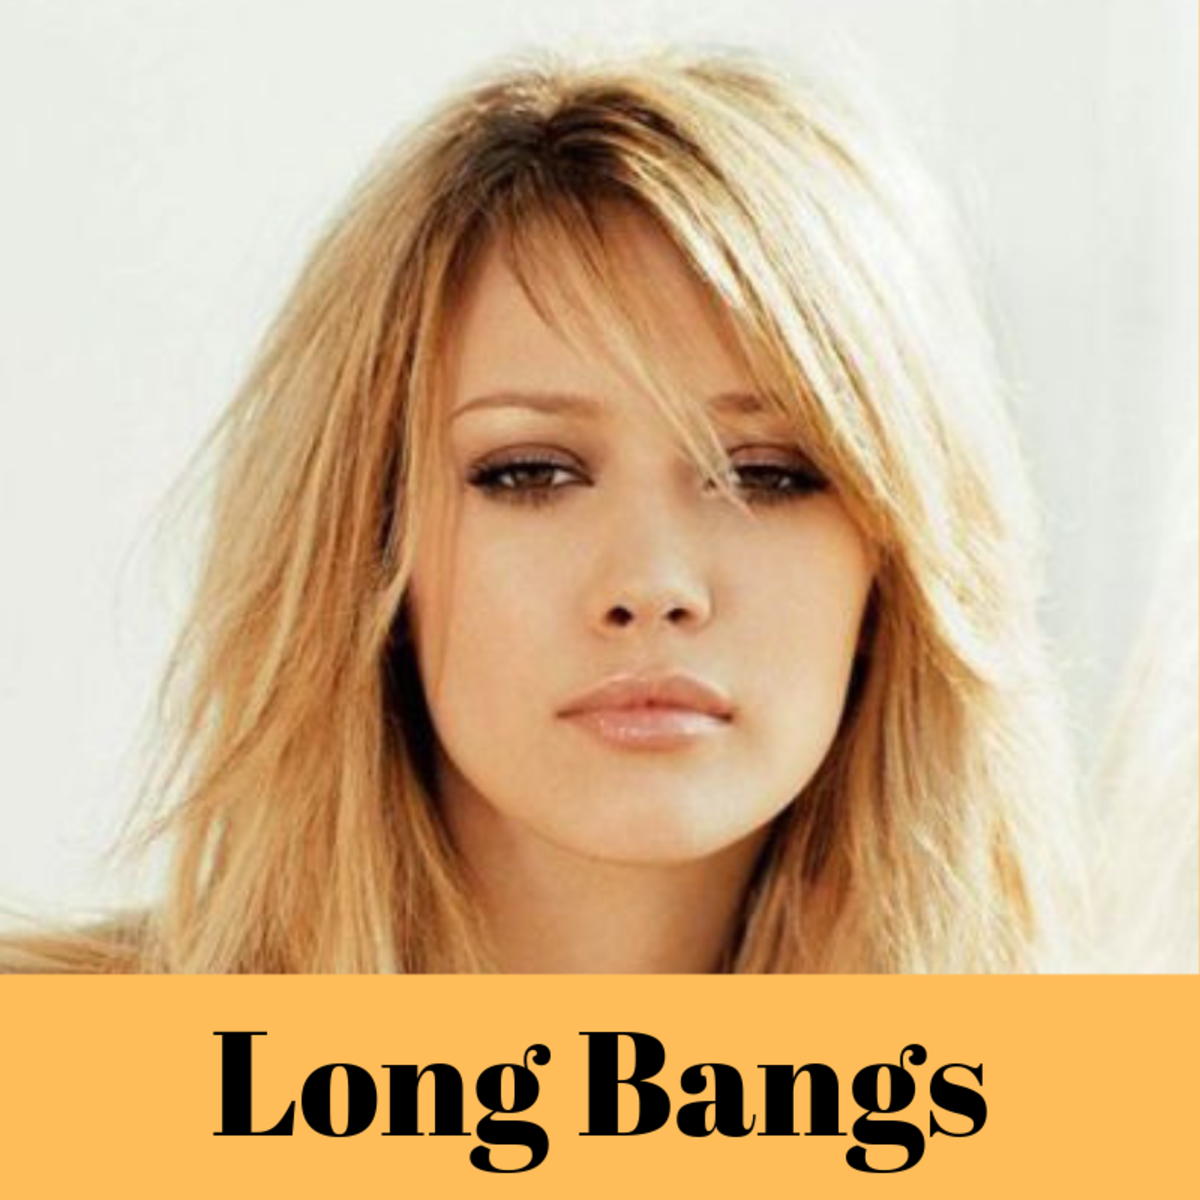 the-different-styles-of-bangs-and-how-to-wear-them